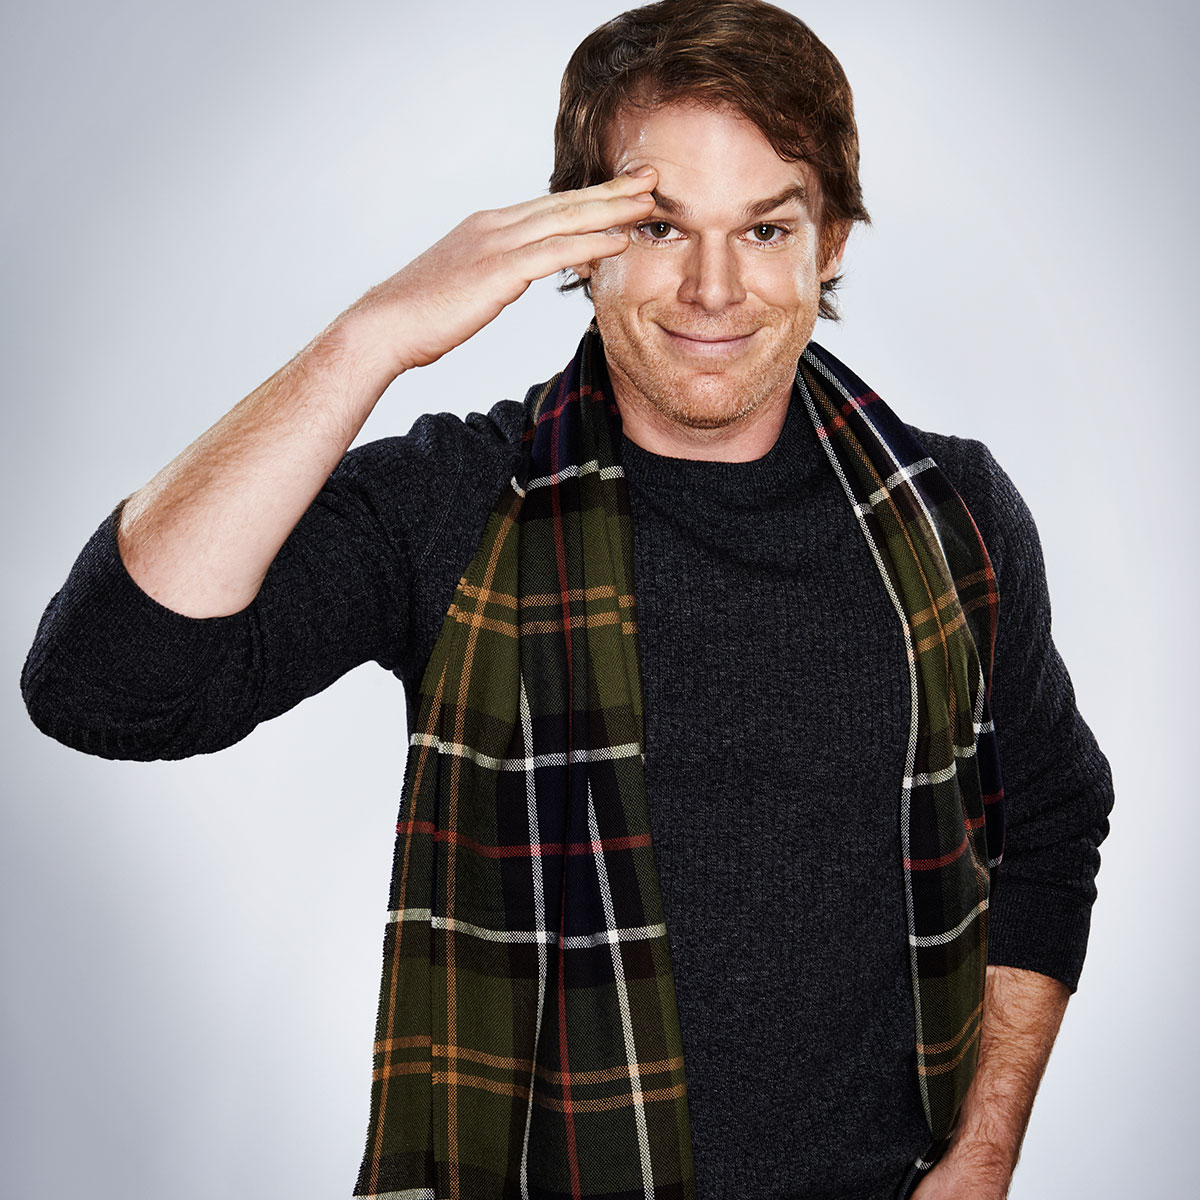 Entertainment Weekly feature on Sundance: Michael C. Hall shot by Christopher Beyer